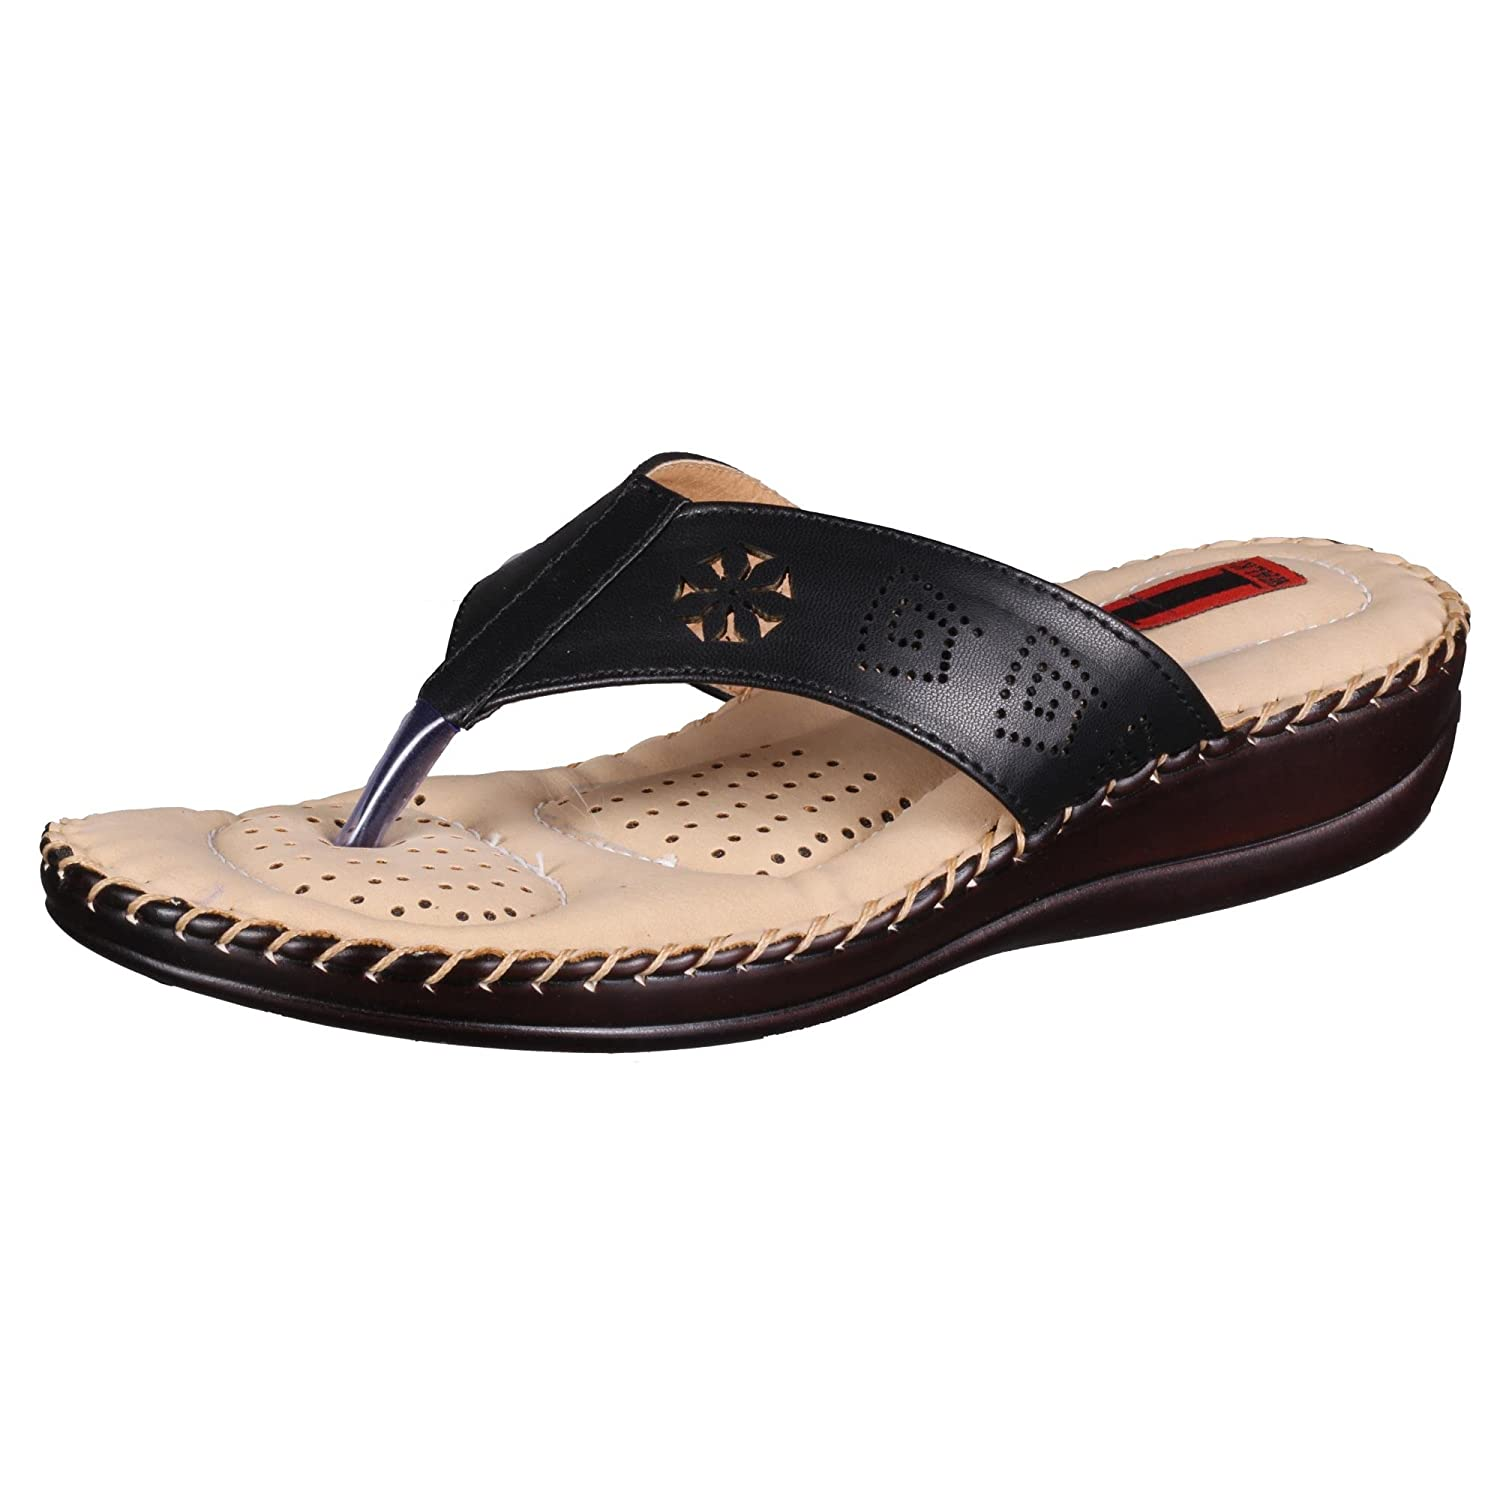 75df04df189e6a 1 WALK Comfortable DR Sole Women-Flats Sandals Fancy WEAR Party WEAR Original Slippers Casual  Footwear-Black MP-DR100B-Black- Parent SKU  Buy Online at Low ...